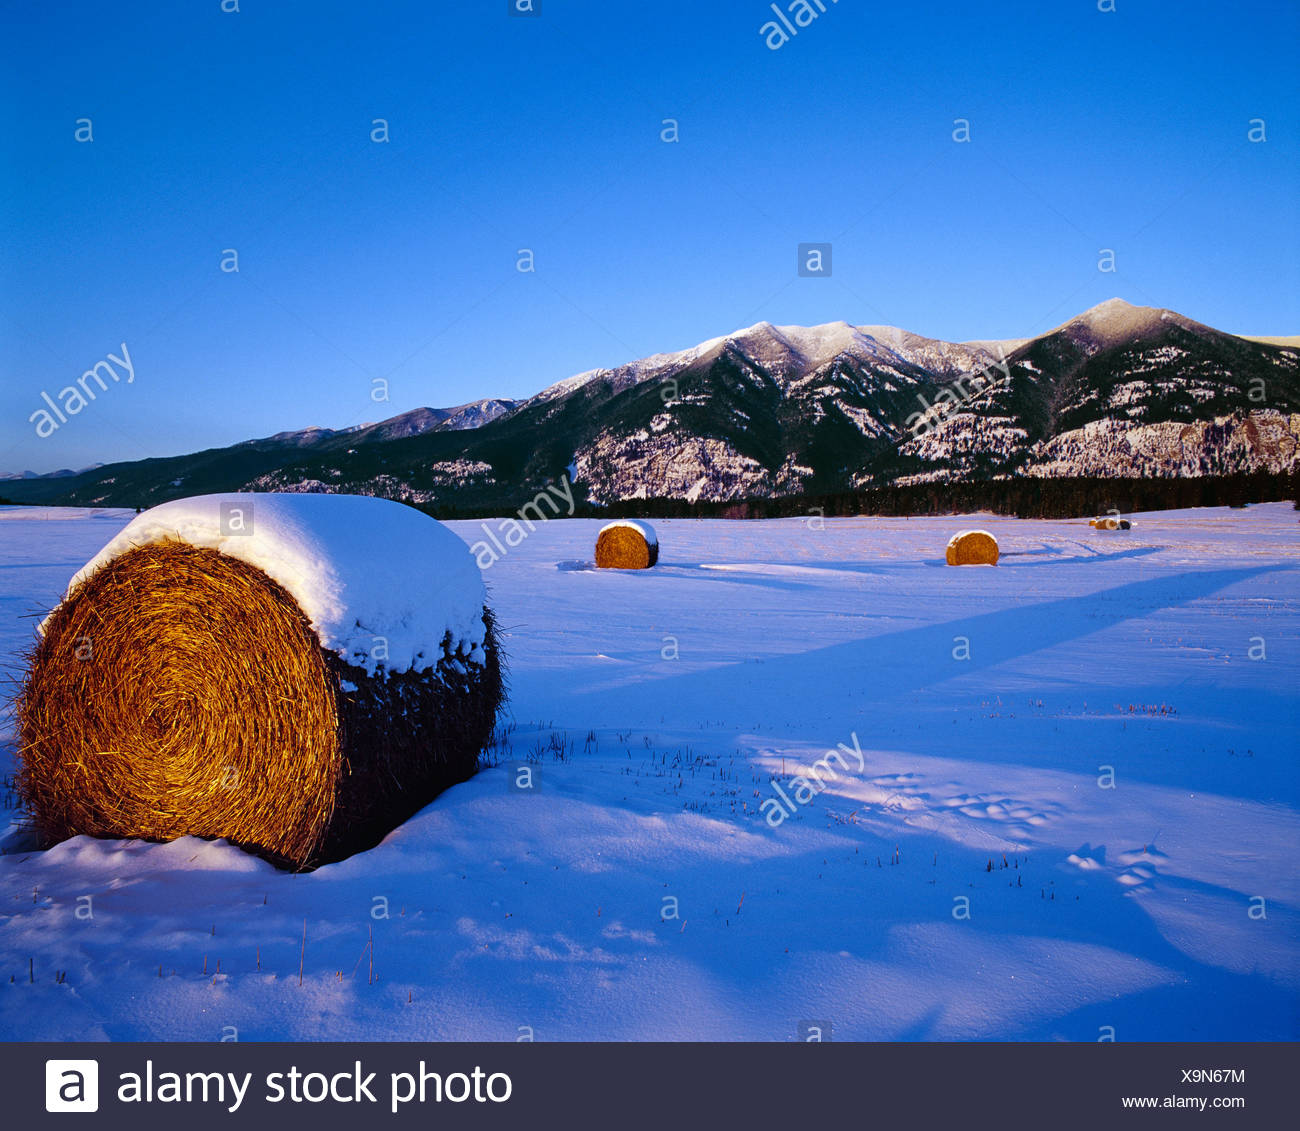 Agriculture Round Hay Rolls In A Snow Covered Field With